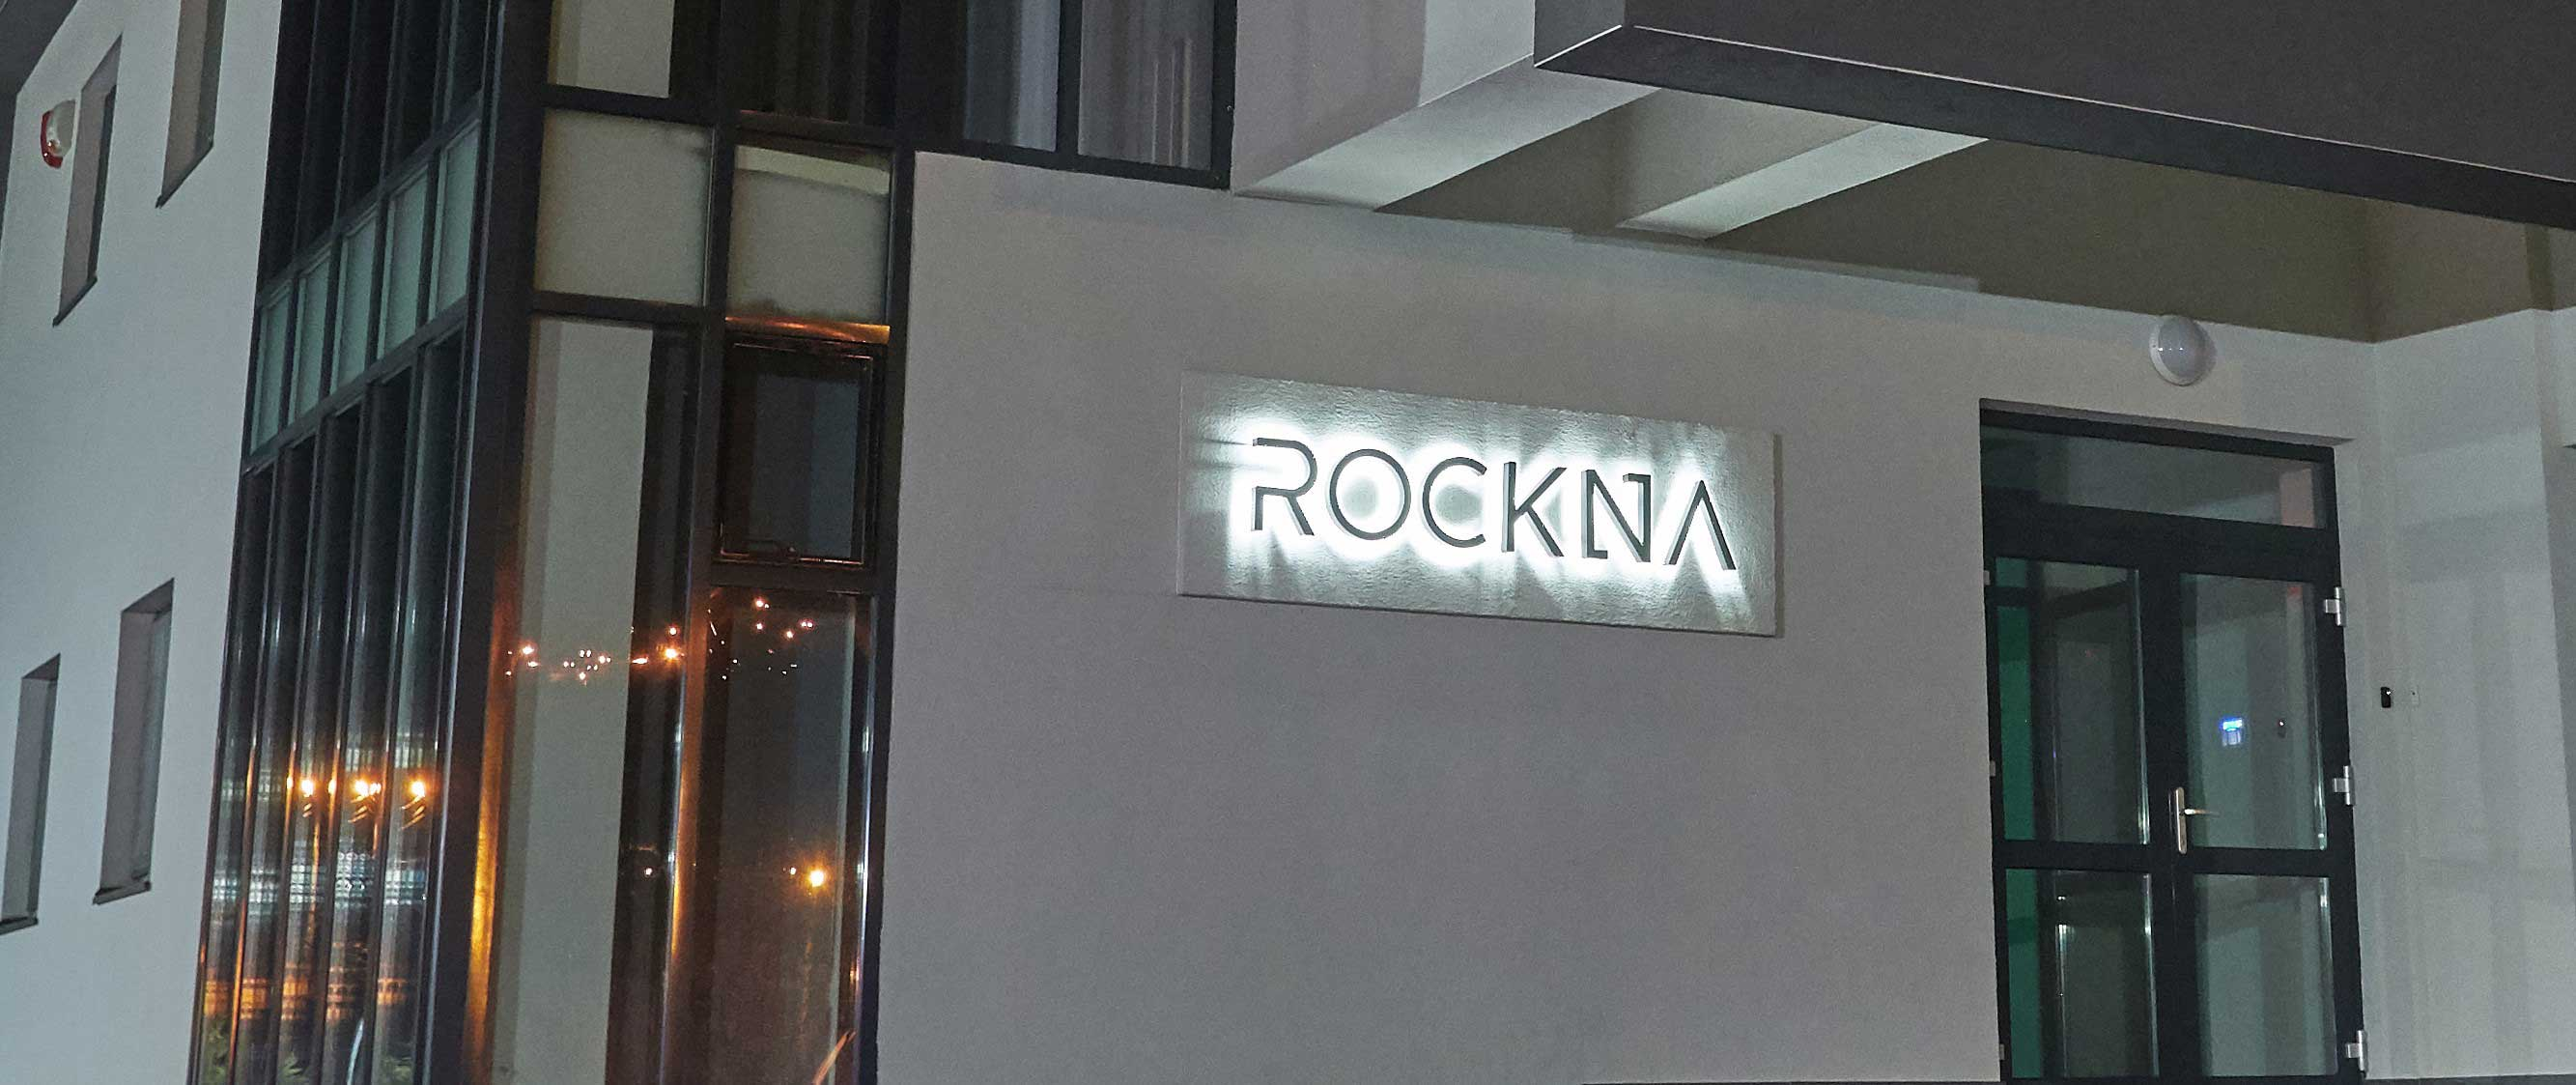 Rockna company night logo